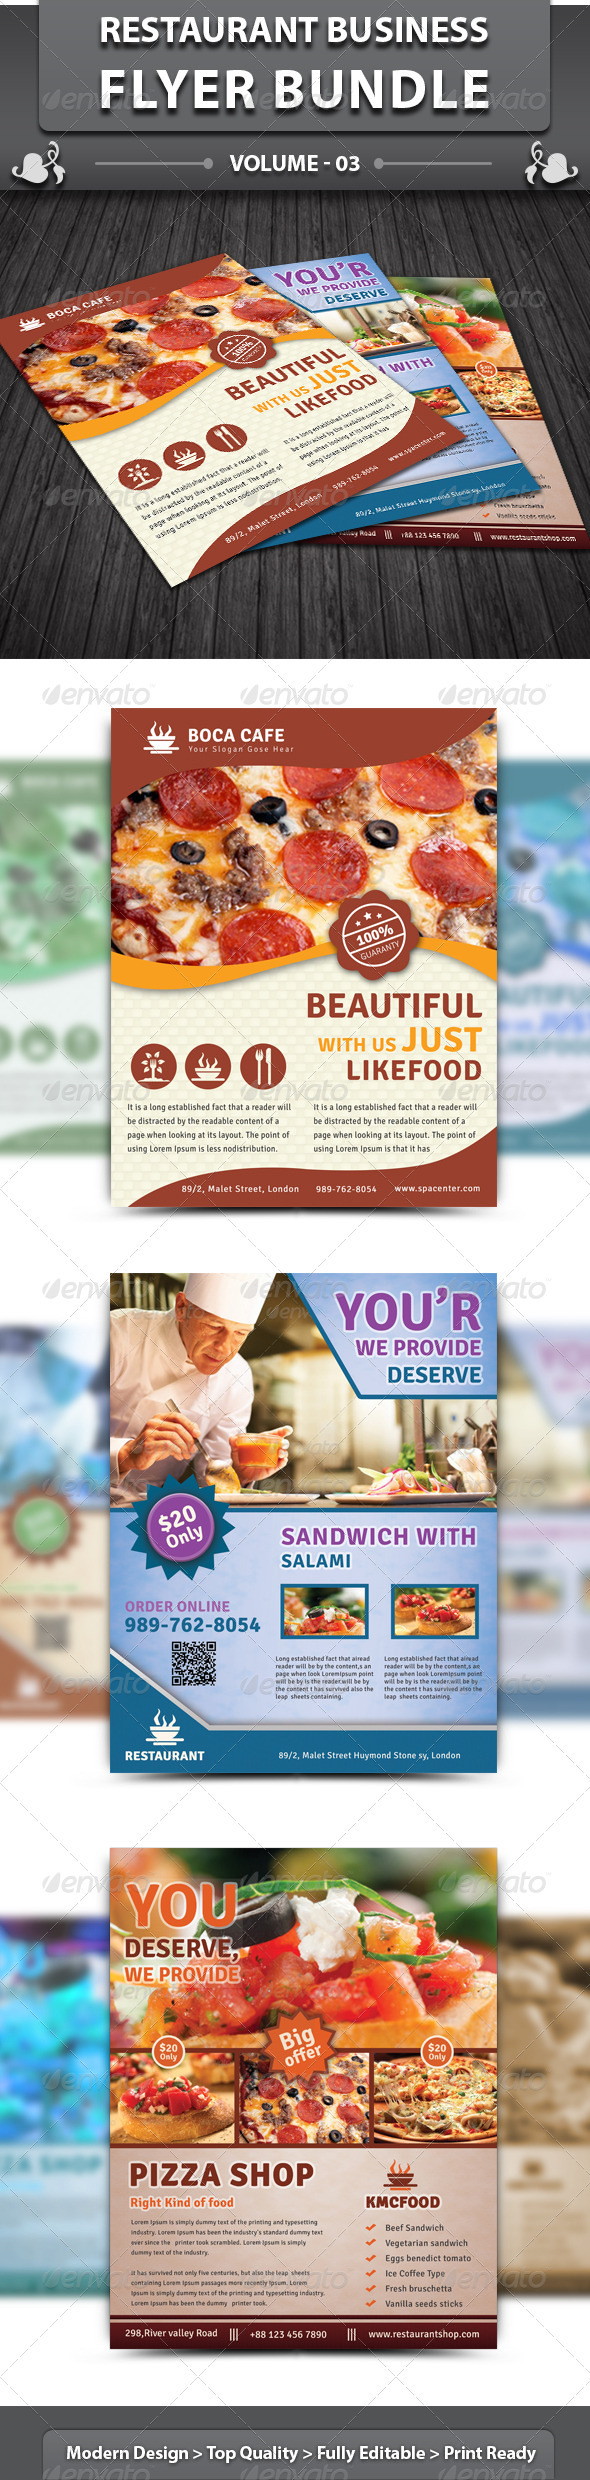 Restaurant Business Flyer | Bundle 3 - Restaurant Flyers